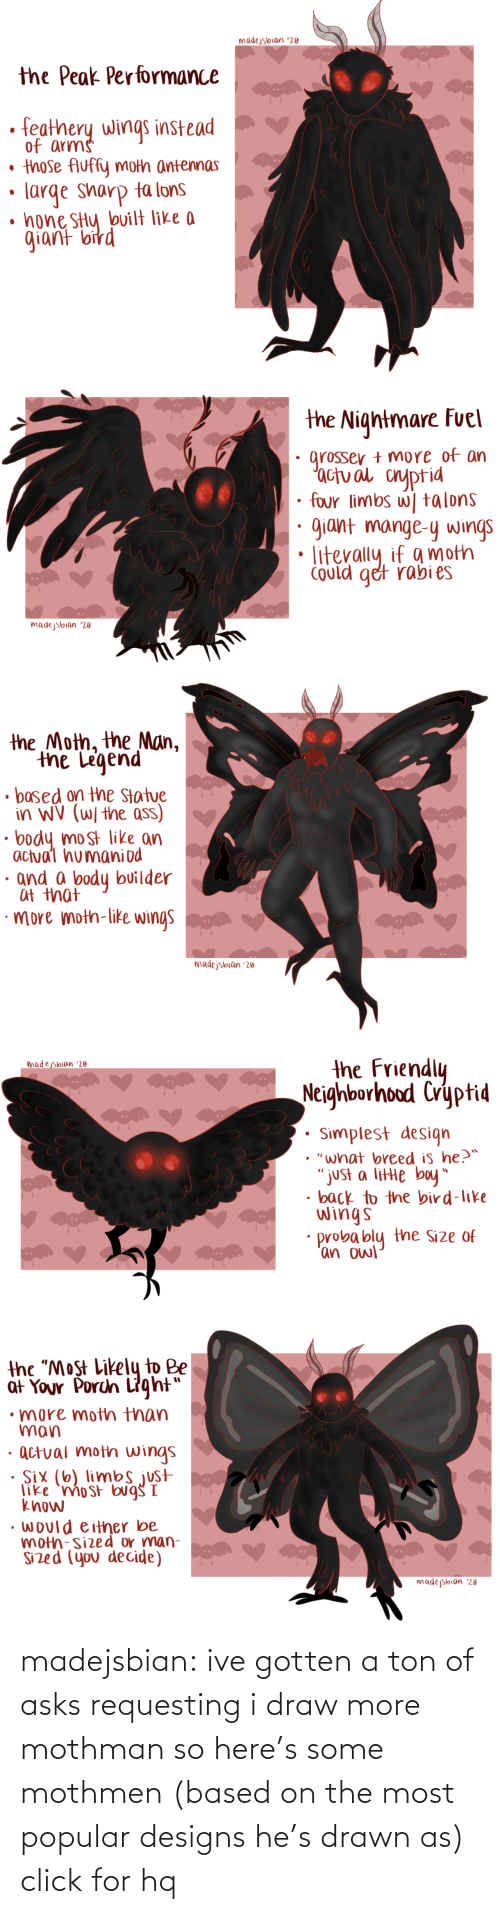 "Instead Of: madejsbian '20  the Peak Performance  feathery wings instead  of arms  • those Auffy moth antennas  large sharp ta lons  • hone SHy bvilt like a  giant bird   the Nightmare Fuel  grosser + more of an  'actual cnyptid  four limbs w| talons  giant mange-y wings  Could get rabi es  madejsbian '20   the Moth, the Man,  the Legend  • based on the Statue  in WV (W/ the ass)  body most like an  actual humaniod  · and a body builder  at that  ·more moth-like wings  madejsbian '20   the Friendly  Neighborhood Cryptid  madejsbian '20  Simplest design  • ""what breed is he?™  ""just a litte boy""  • back to the bird-like  wings  probably the Size of  'an owl   the ""Most Likely to Be  at Your Porch Light""  •more moth than  man  · actual moth wings  · Six (6) limbs just  like 'mo st bug I  know  • would either be  moth-sized or man-  Sized (you decide)  madejsbian '20 madejsbian: ive gotten a ton of asks requesting i draw more mothman so here's some mothmen (based on the most popular designs he's drawn as)